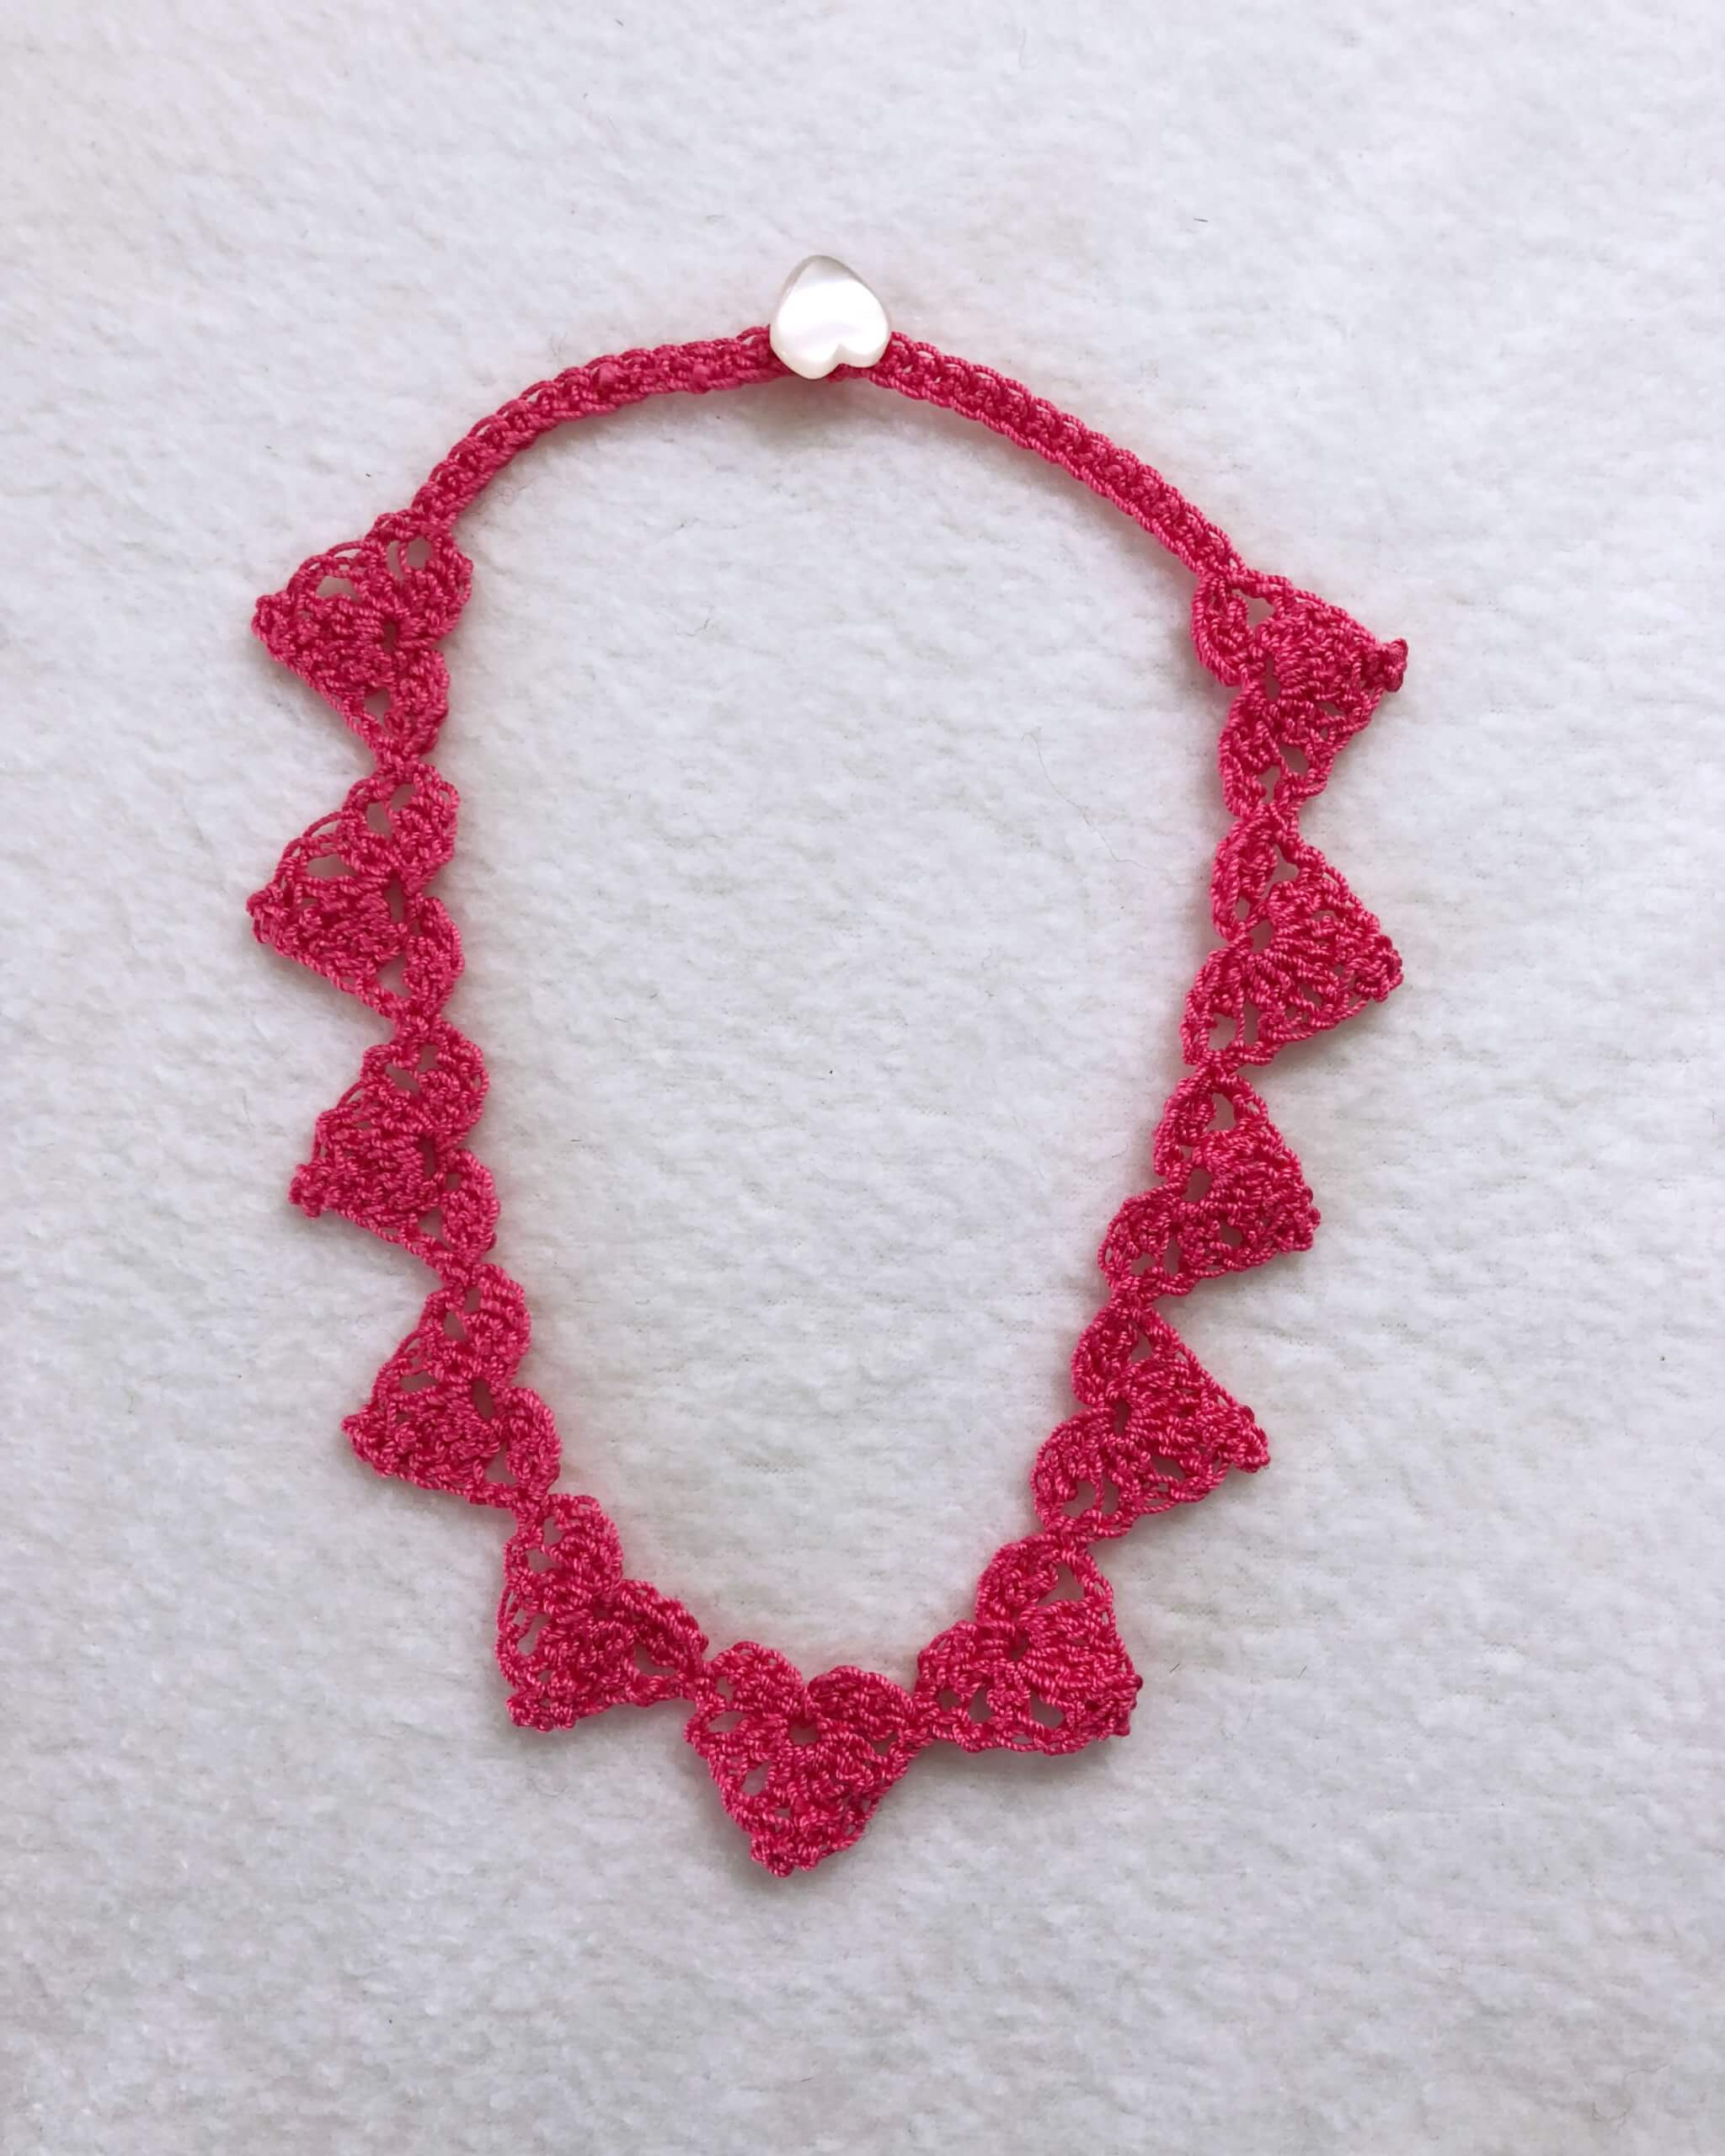 Pink Thread Crochet Heart Necklace on white background